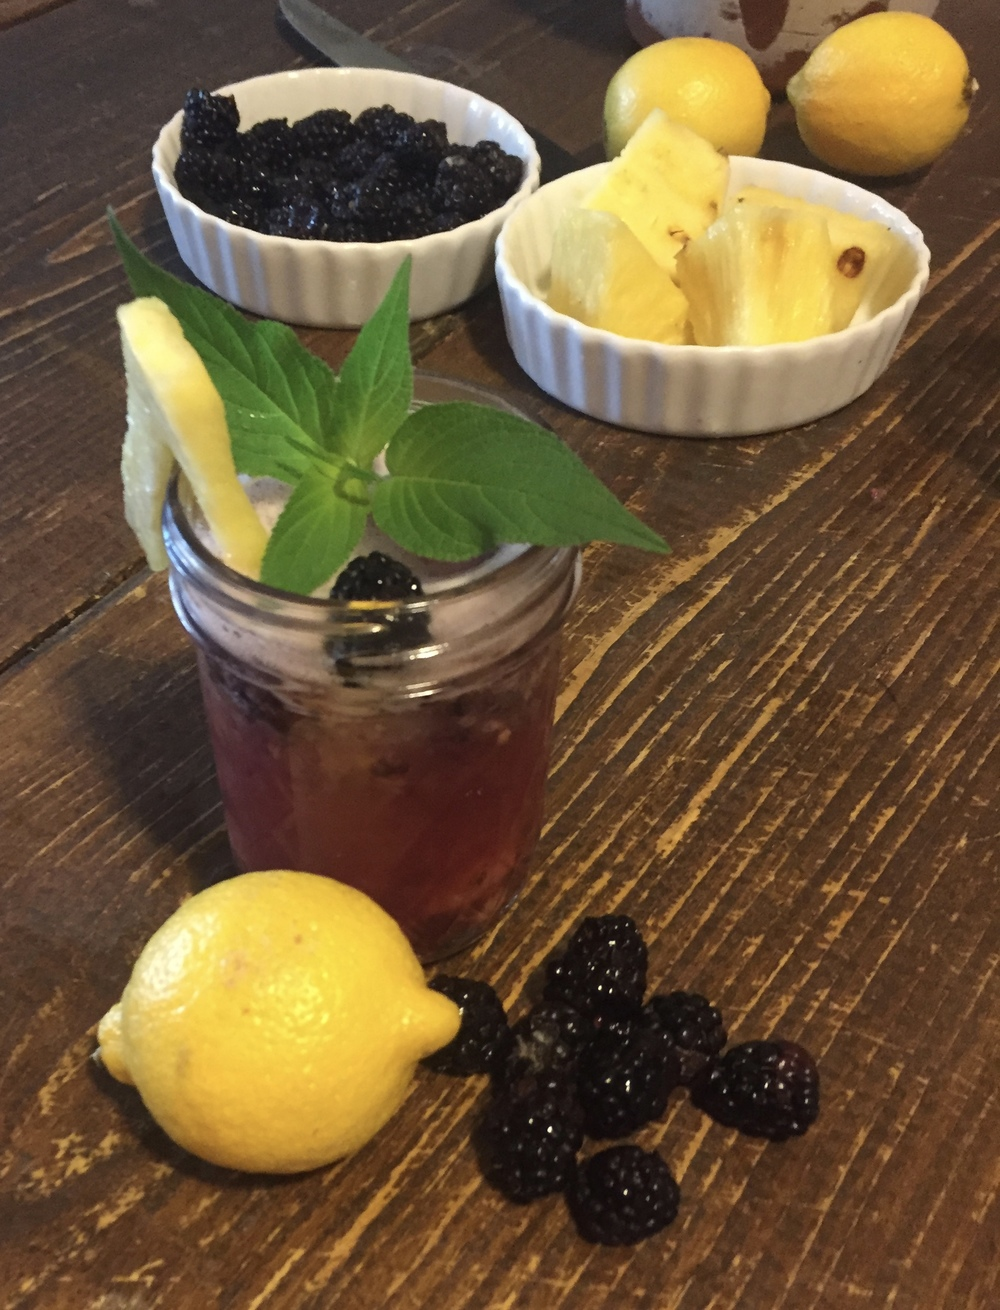 Garnish with a wedge of pineapple, a blackberry, and pineapple sage leaf.